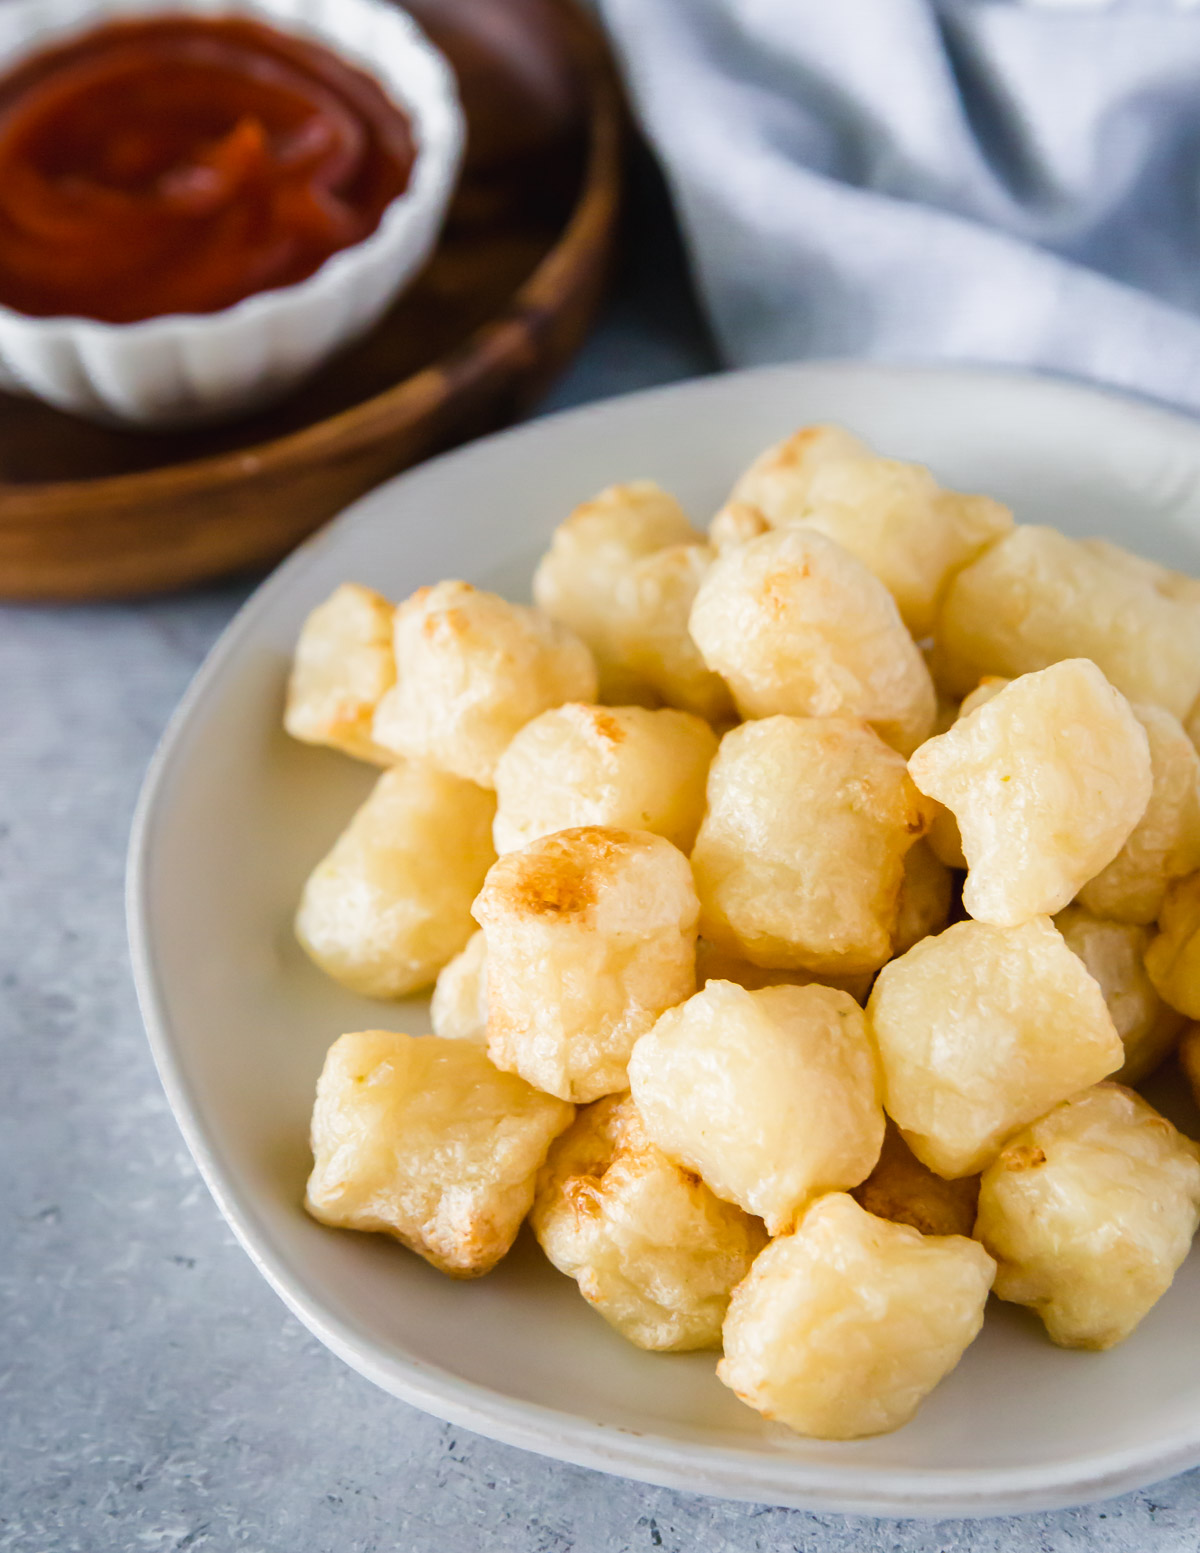 Crispy air fried cauliflower gnocchi can be eaten as an appetizer dipped in your favorite condiment like ketchup.